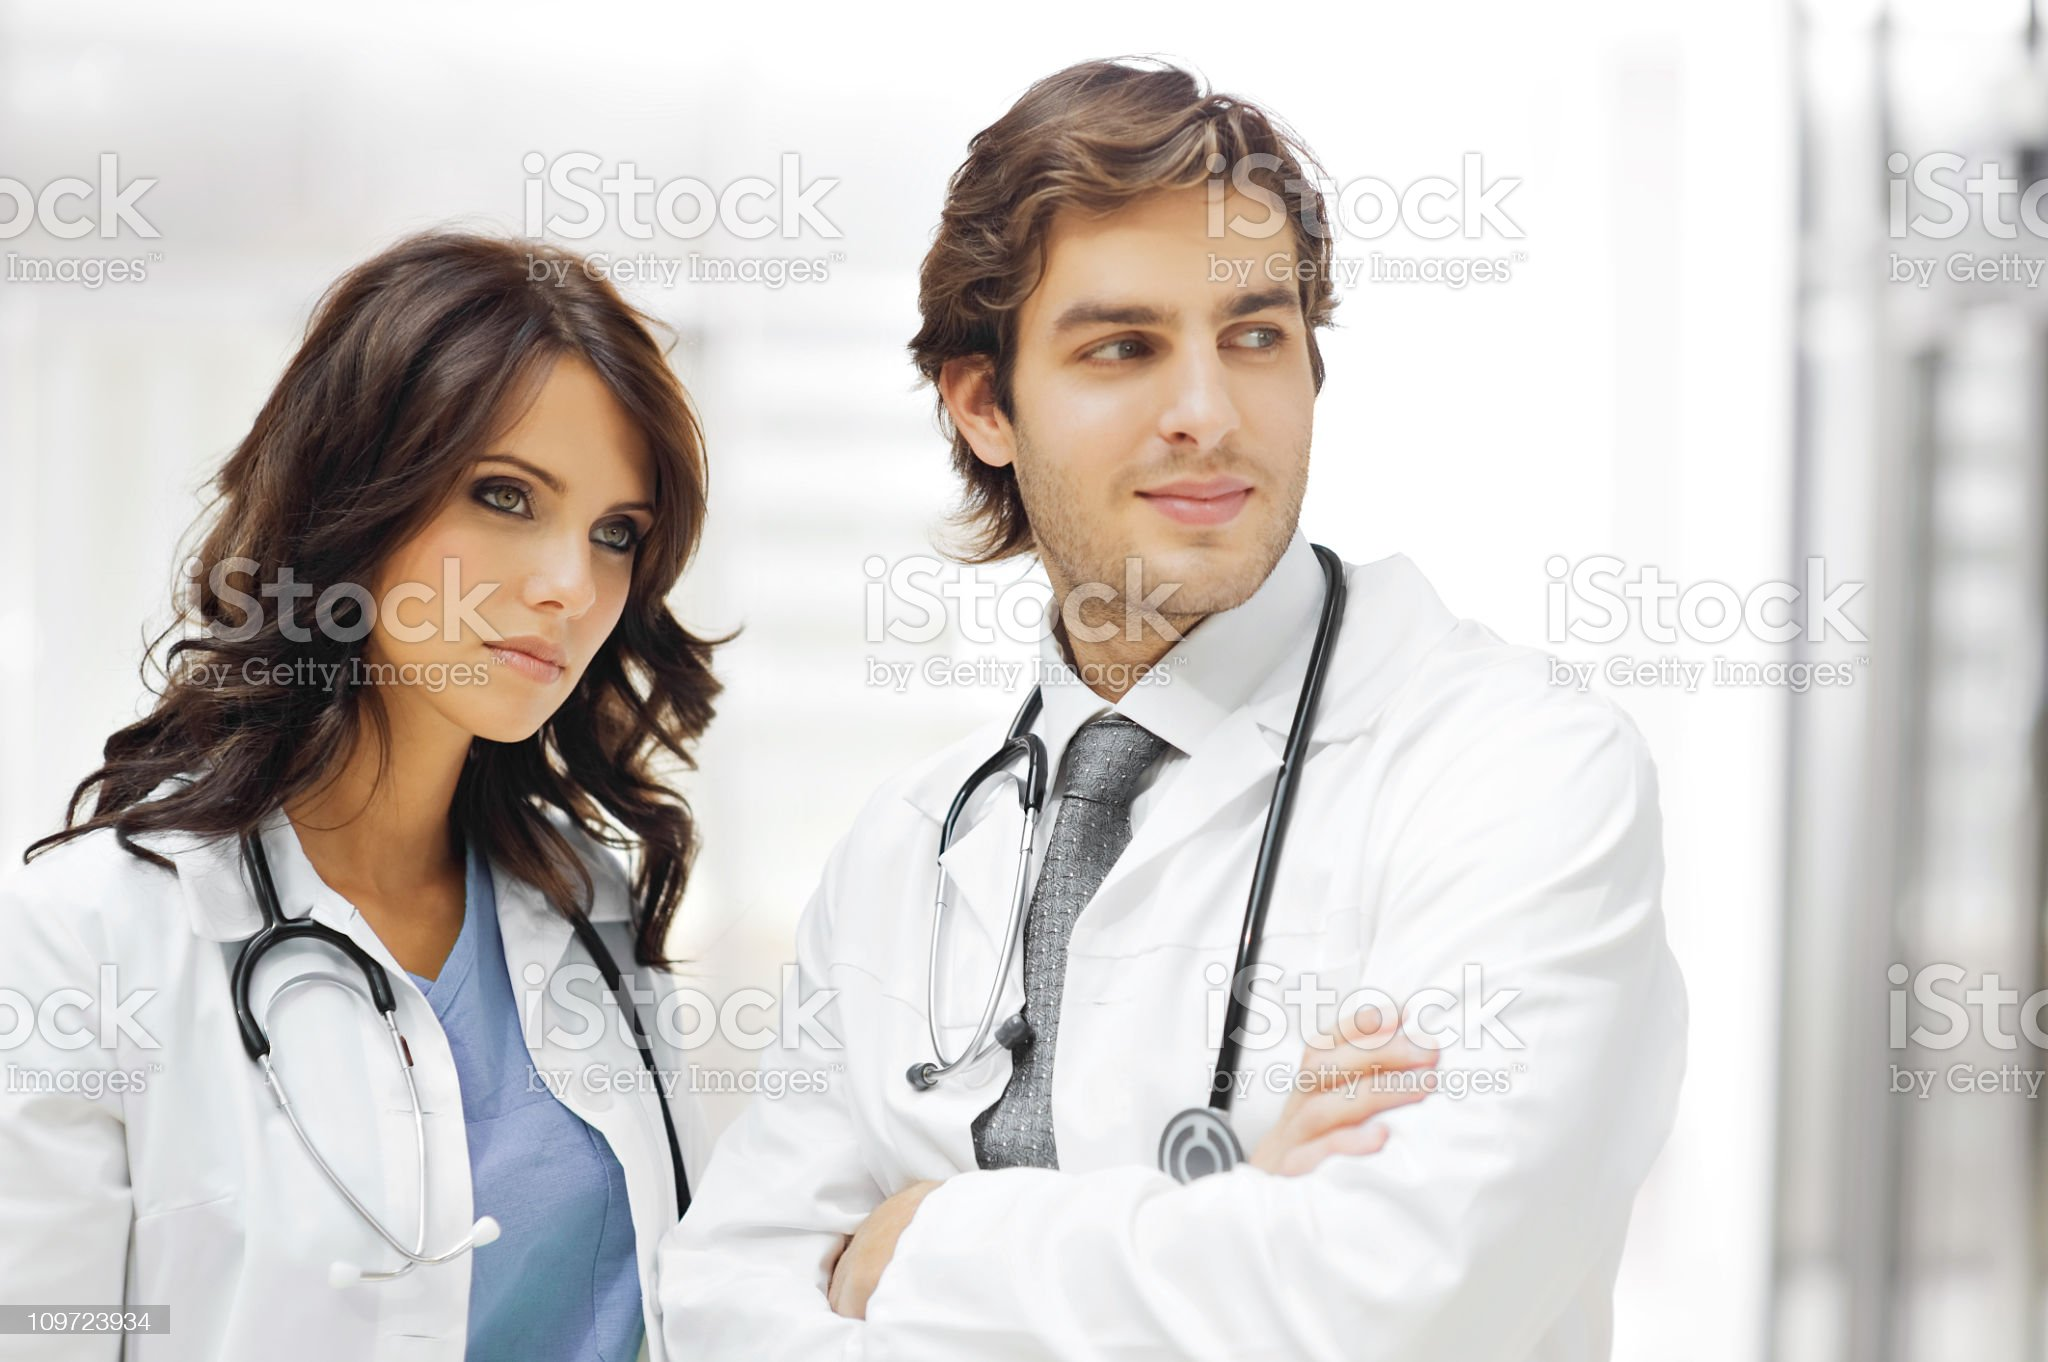 Young doctor with colleague in the background royalty-free stock photo